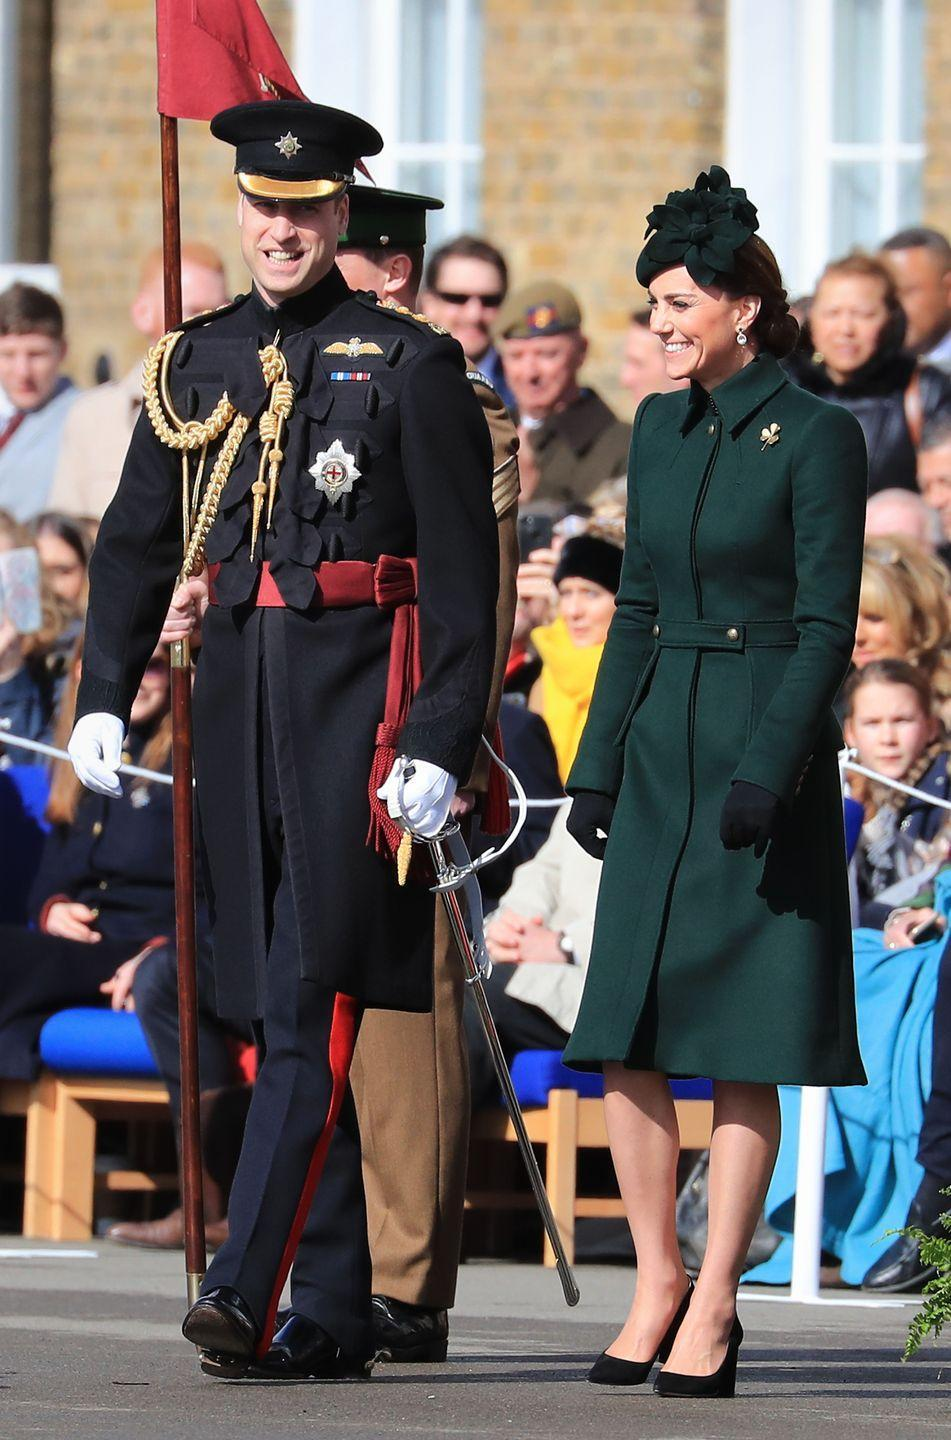 "<p>For her annual St. Patrick's Day visit to the Irish Guards, Kate Middleton wore a dark green Alexander McQueen coat, Kiki McDonough green tourmaline and amethyst drop earrings, a green fascinator, and the <a href=""https://www.townandcountrymag.com/style/jewelry-and-watches/a26799974/kate-middleton-gold-shamrock-brooch-history/"" rel=""nofollow noopener"" target=""_blank"" data-ylk=""slk:traditional gold Shamrock brooch"" class=""link rapid-noclick-resp"">traditional gold Shamrock brooch</a>. </p>"